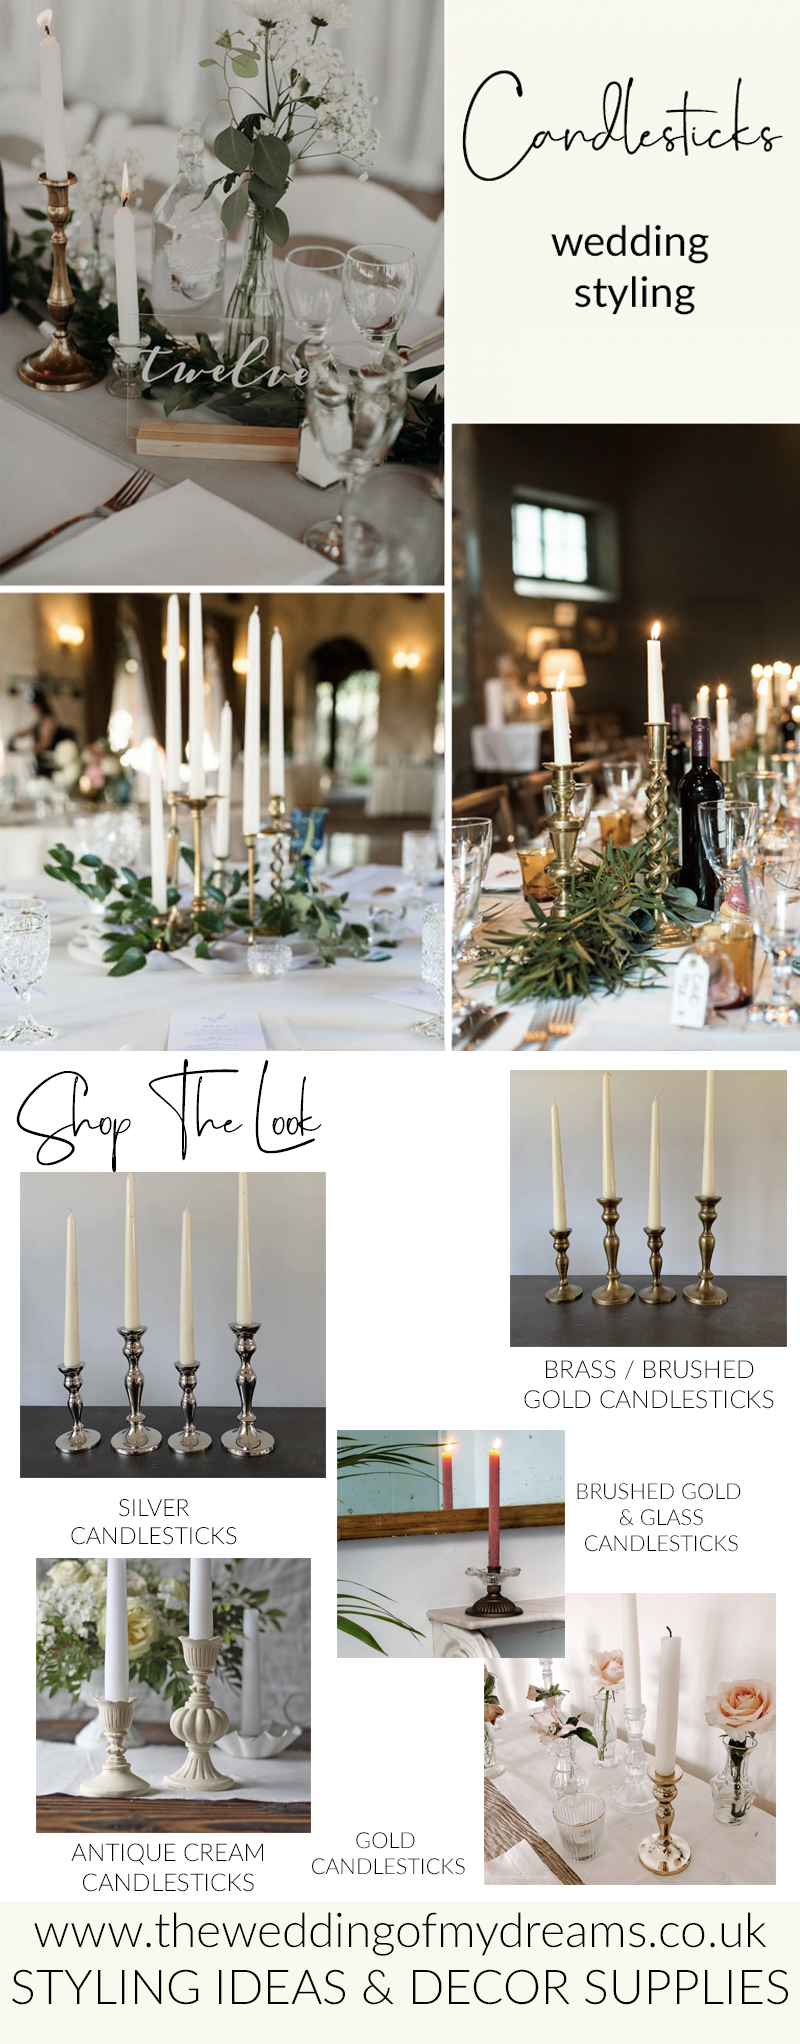 Candlesticks for wedding centrepieces and venue styling